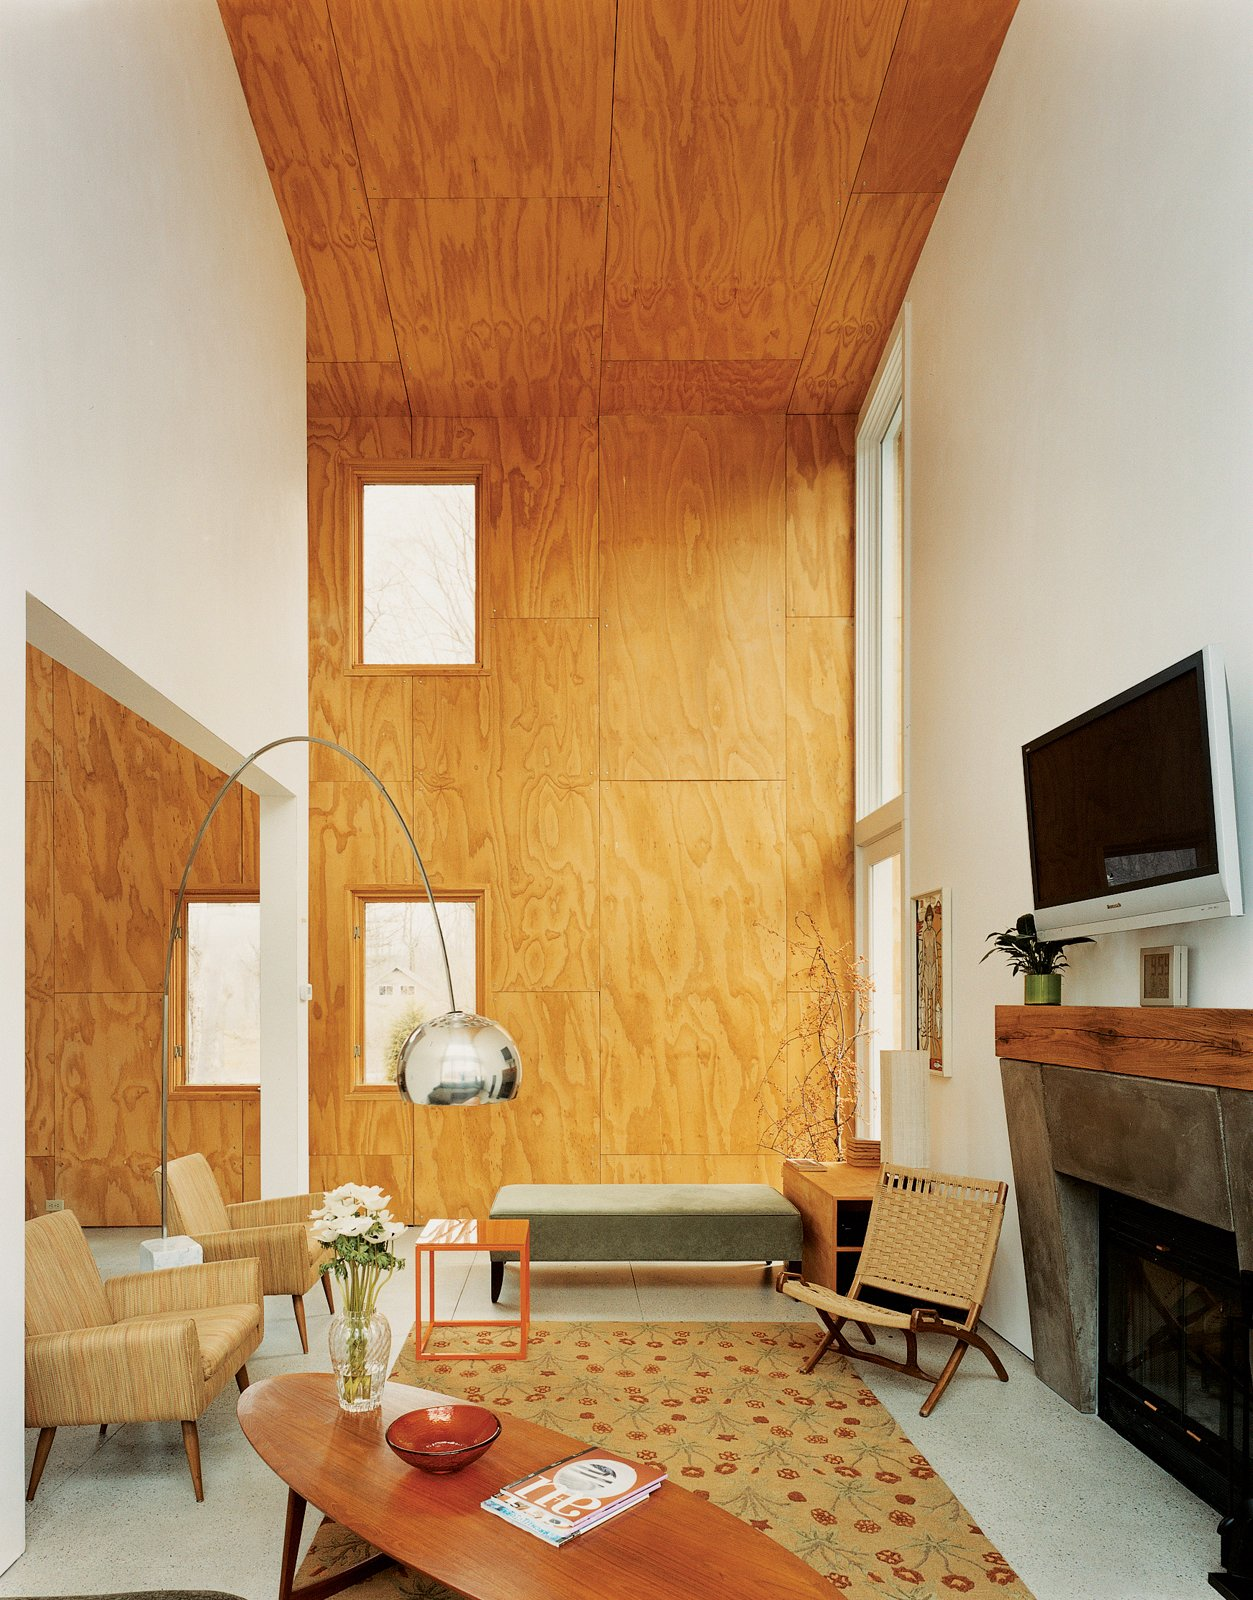 The double-height living area features unfinished plywood cladding.